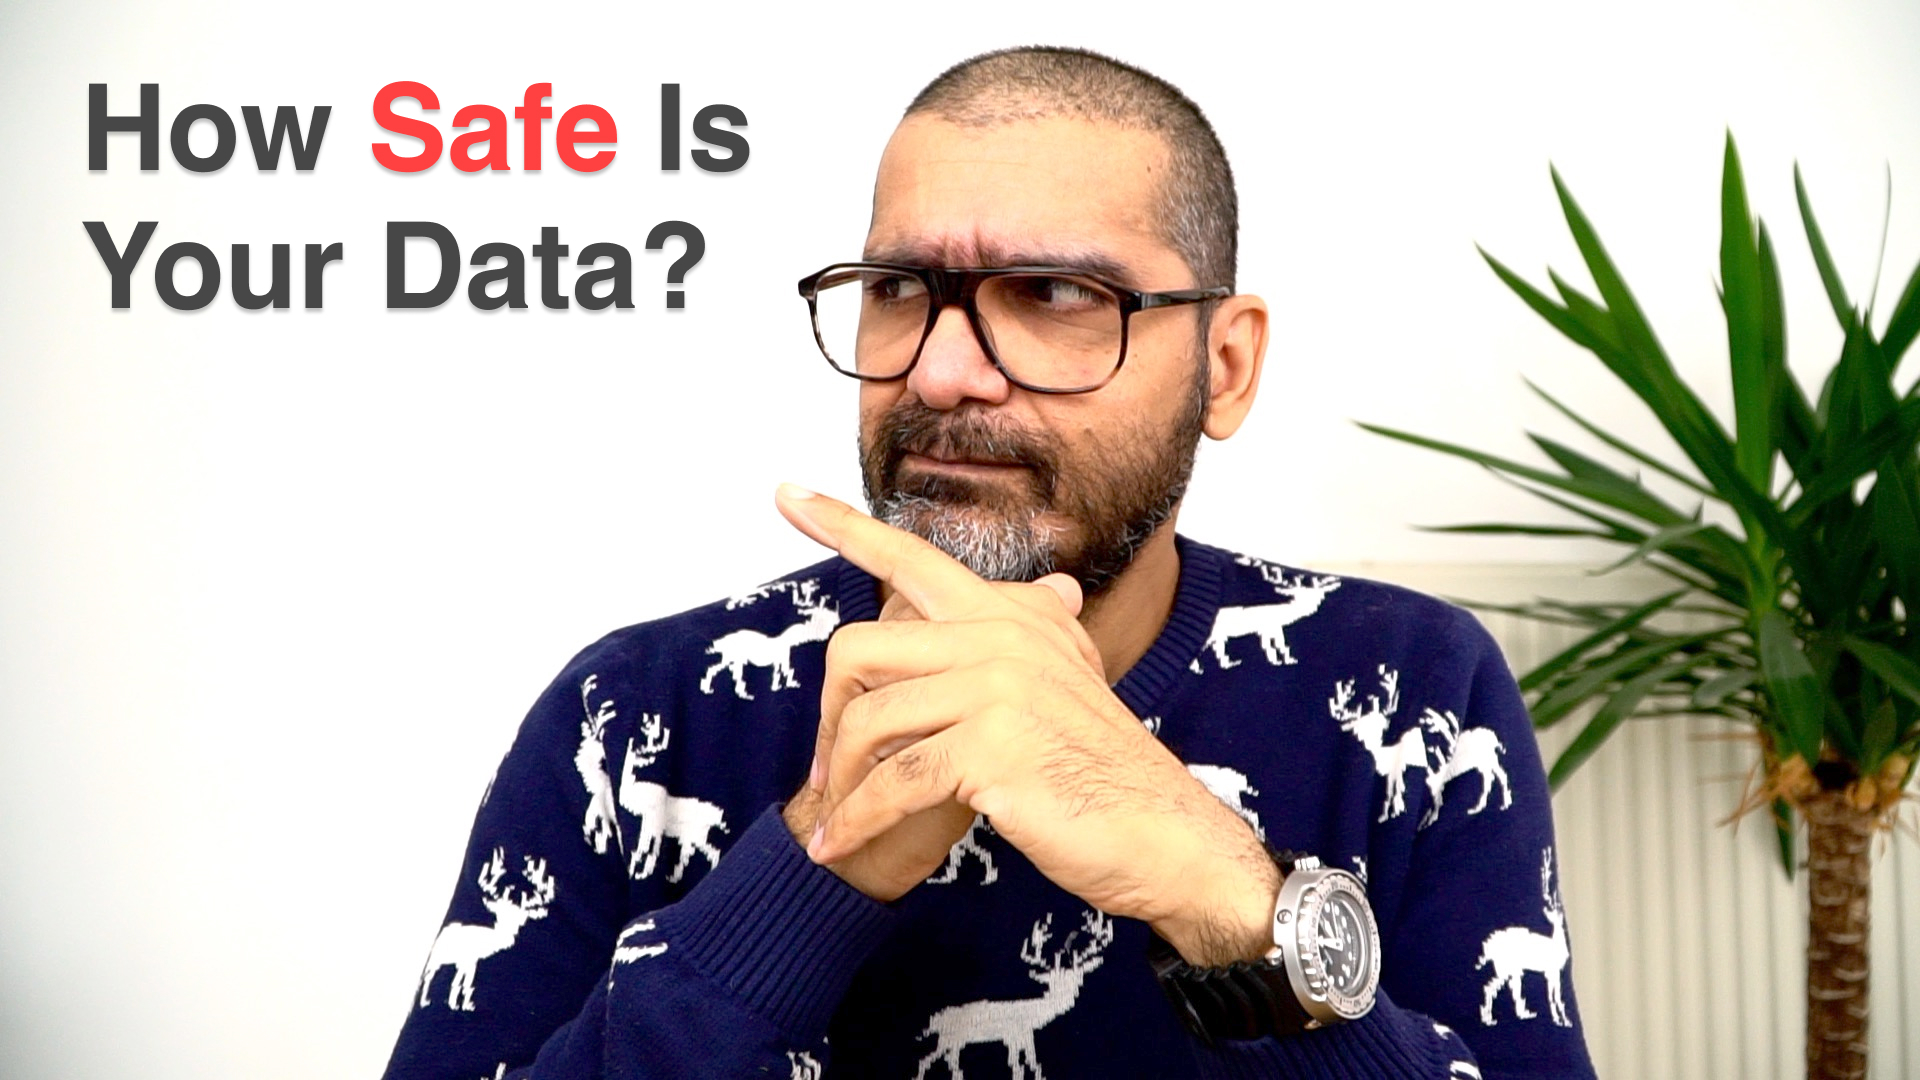 So How Safe is Your Data?